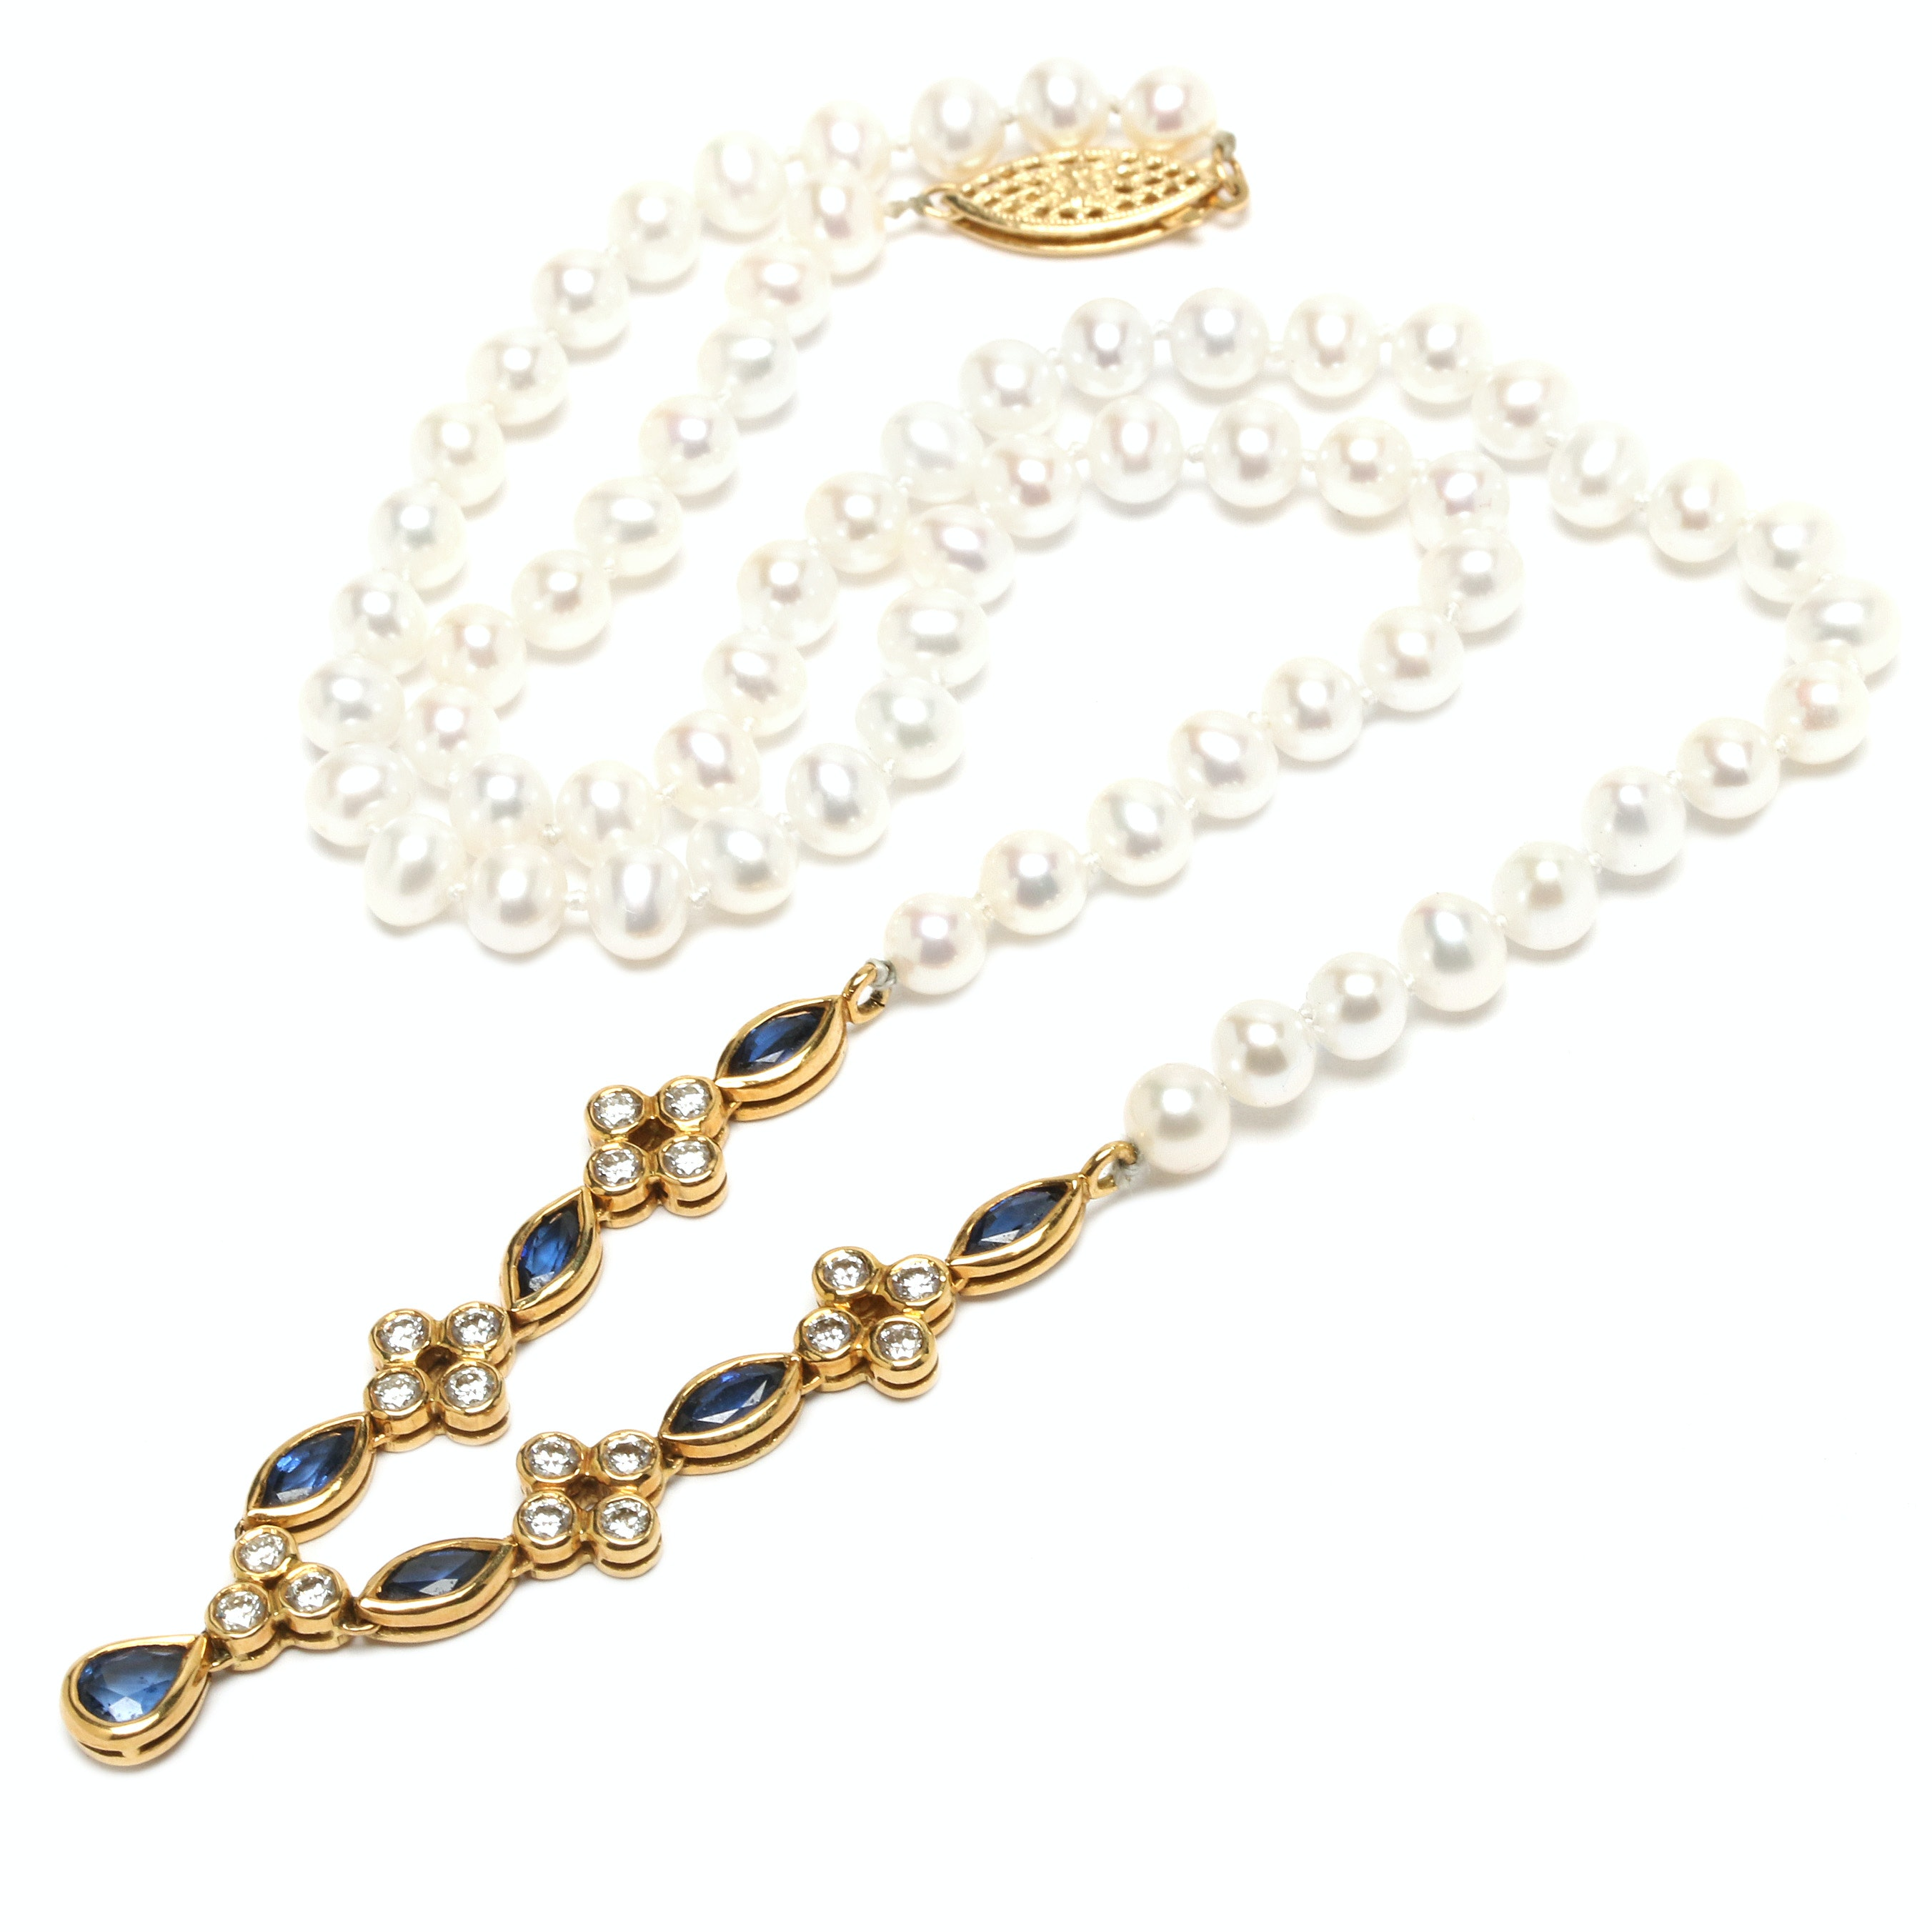 18K Yellow Gold Sapphire, Diamond and Cultured Pearl Necklace with Leather Pouch